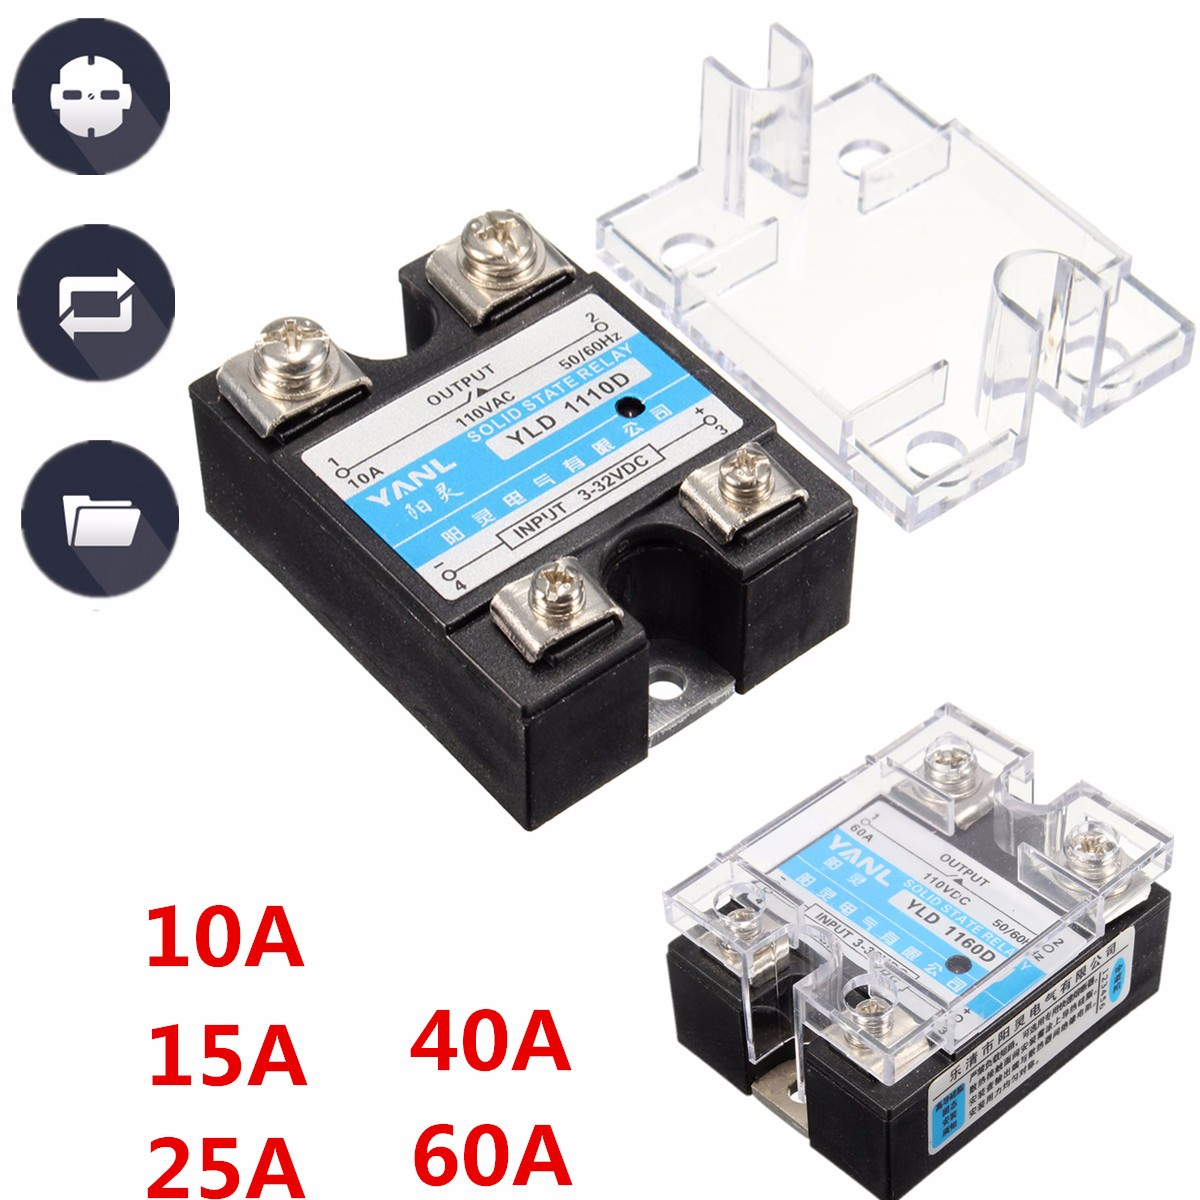 Buy Solid State Relay SSR DC-DC 25A 3-32VDC 5-220VDC 10A 15A 40A 60A JGX-1